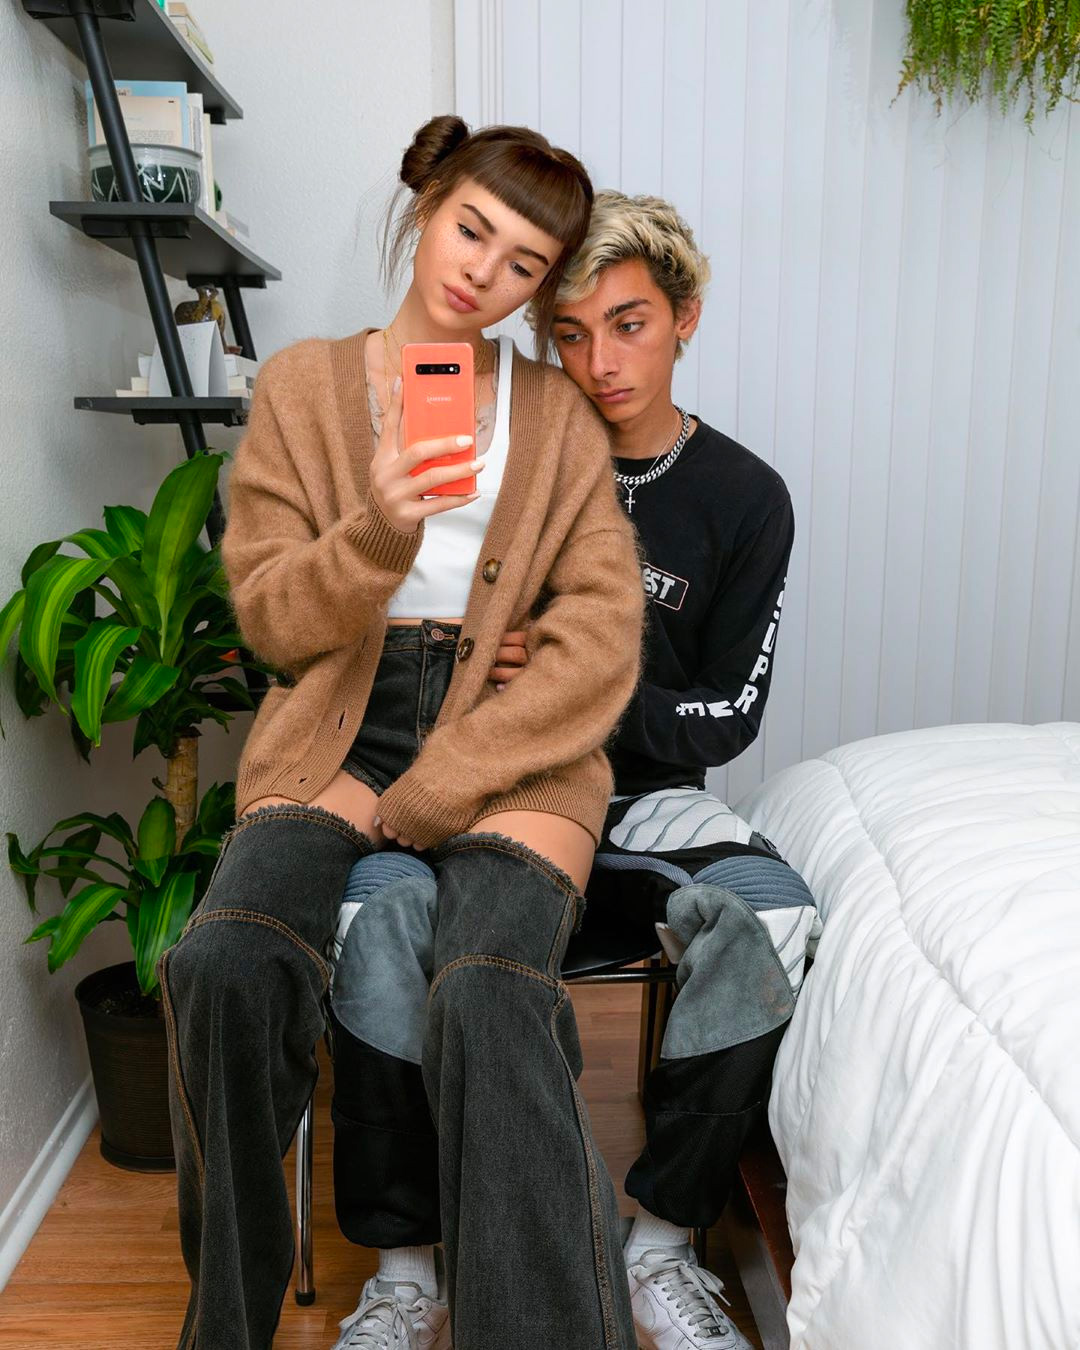 Los Angeles Model Nick Killian with Lil Miquela